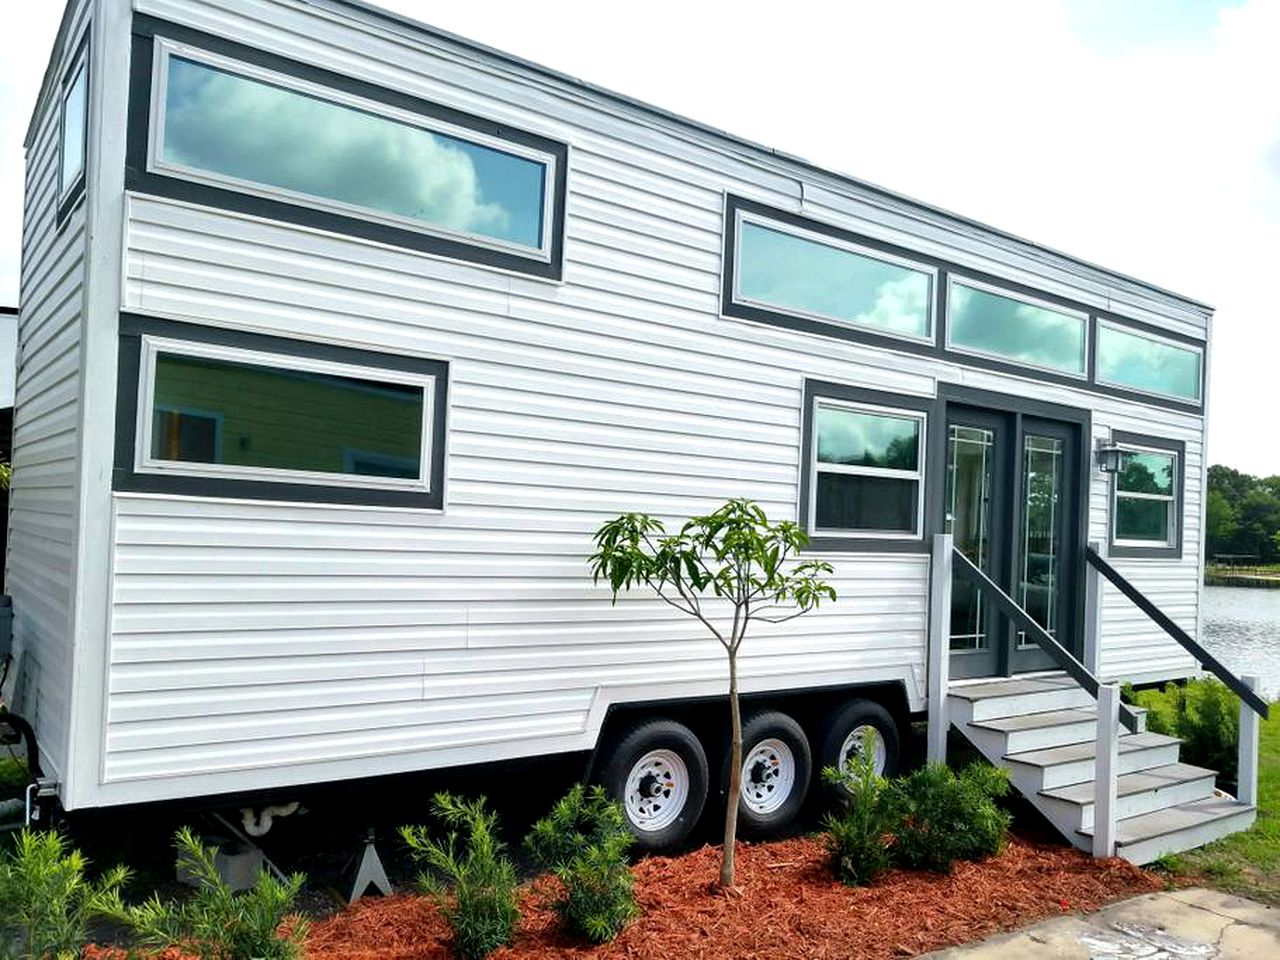 White, paneled tiny house rental for a glamping vacation in Orlando, FL.